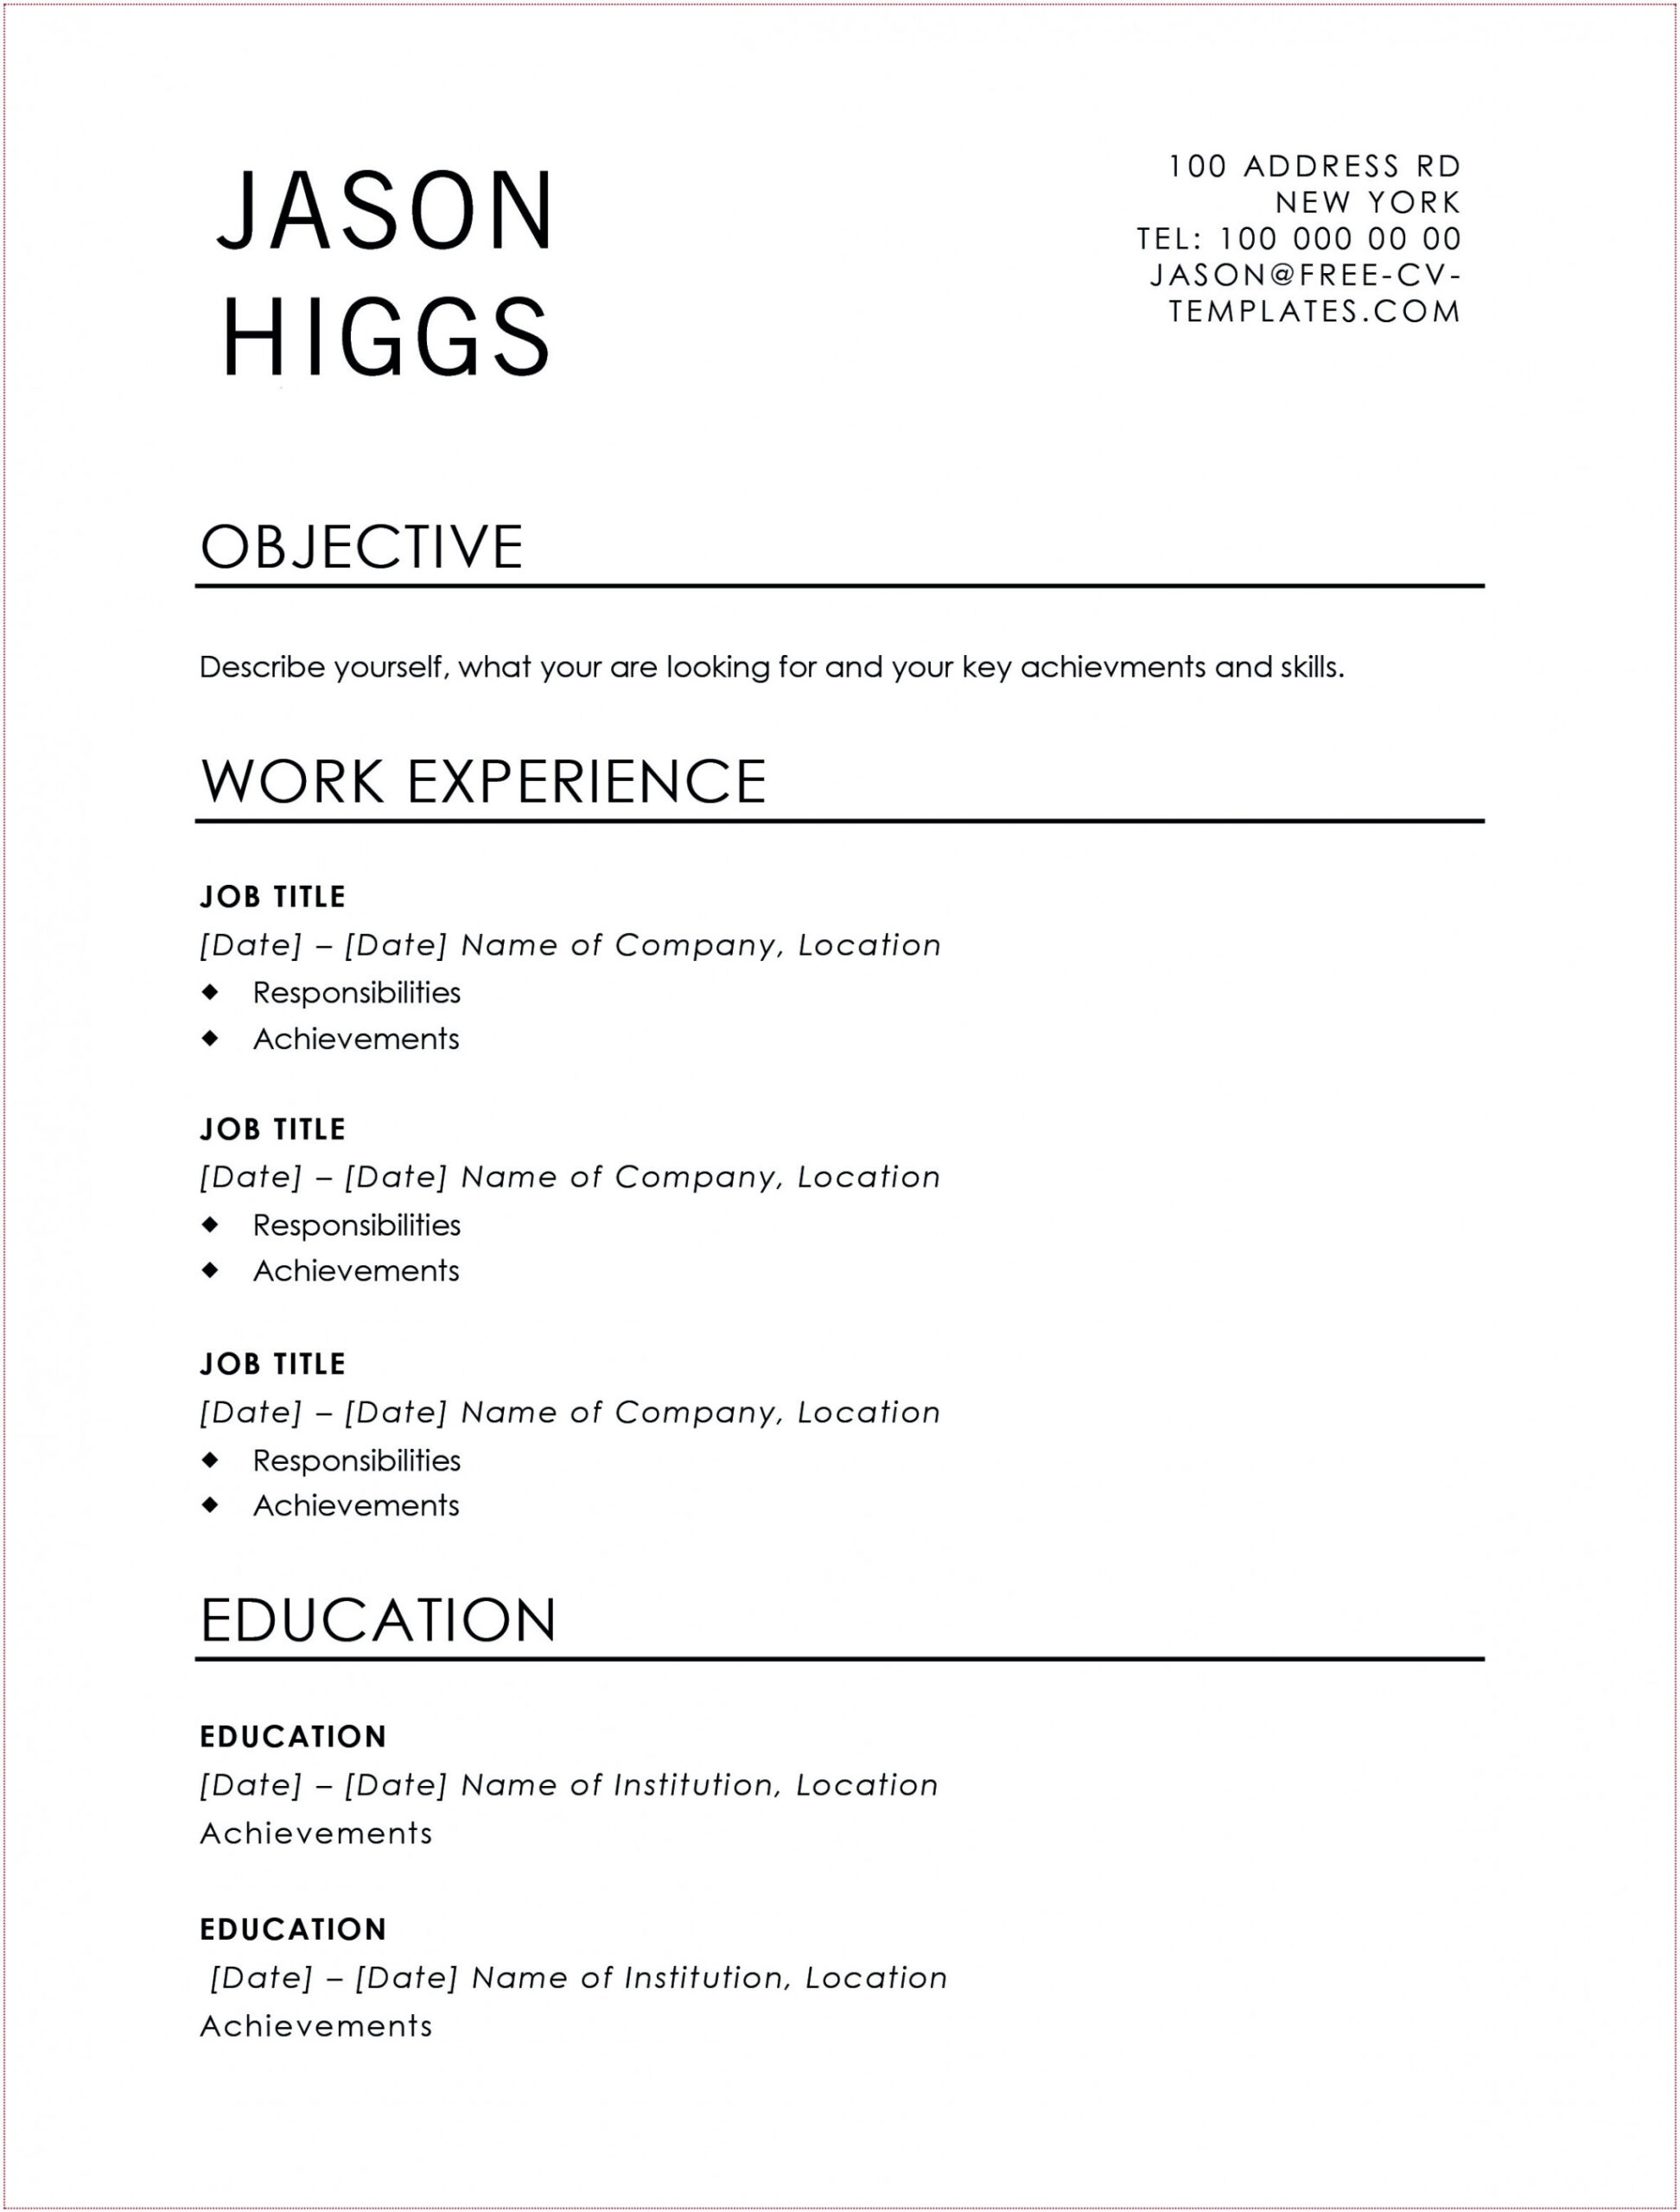 traditional resume examples template builder example jason land the job with this free cv Resume Traditional Resume Examples